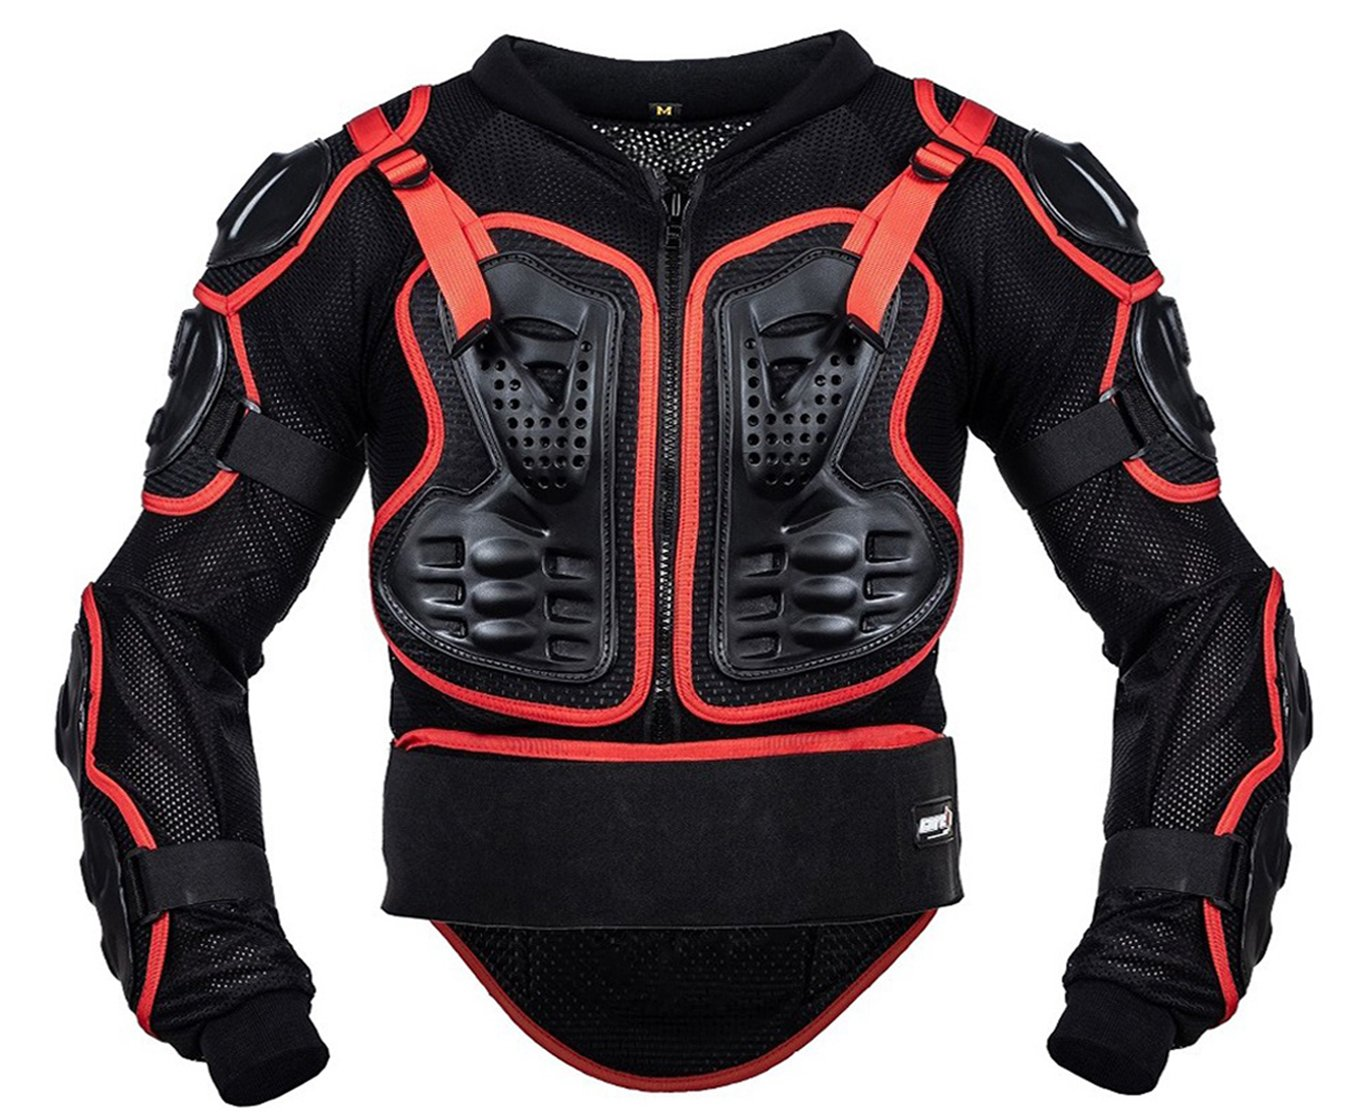 Spartacus Full Body Motorcycle Armored Suit